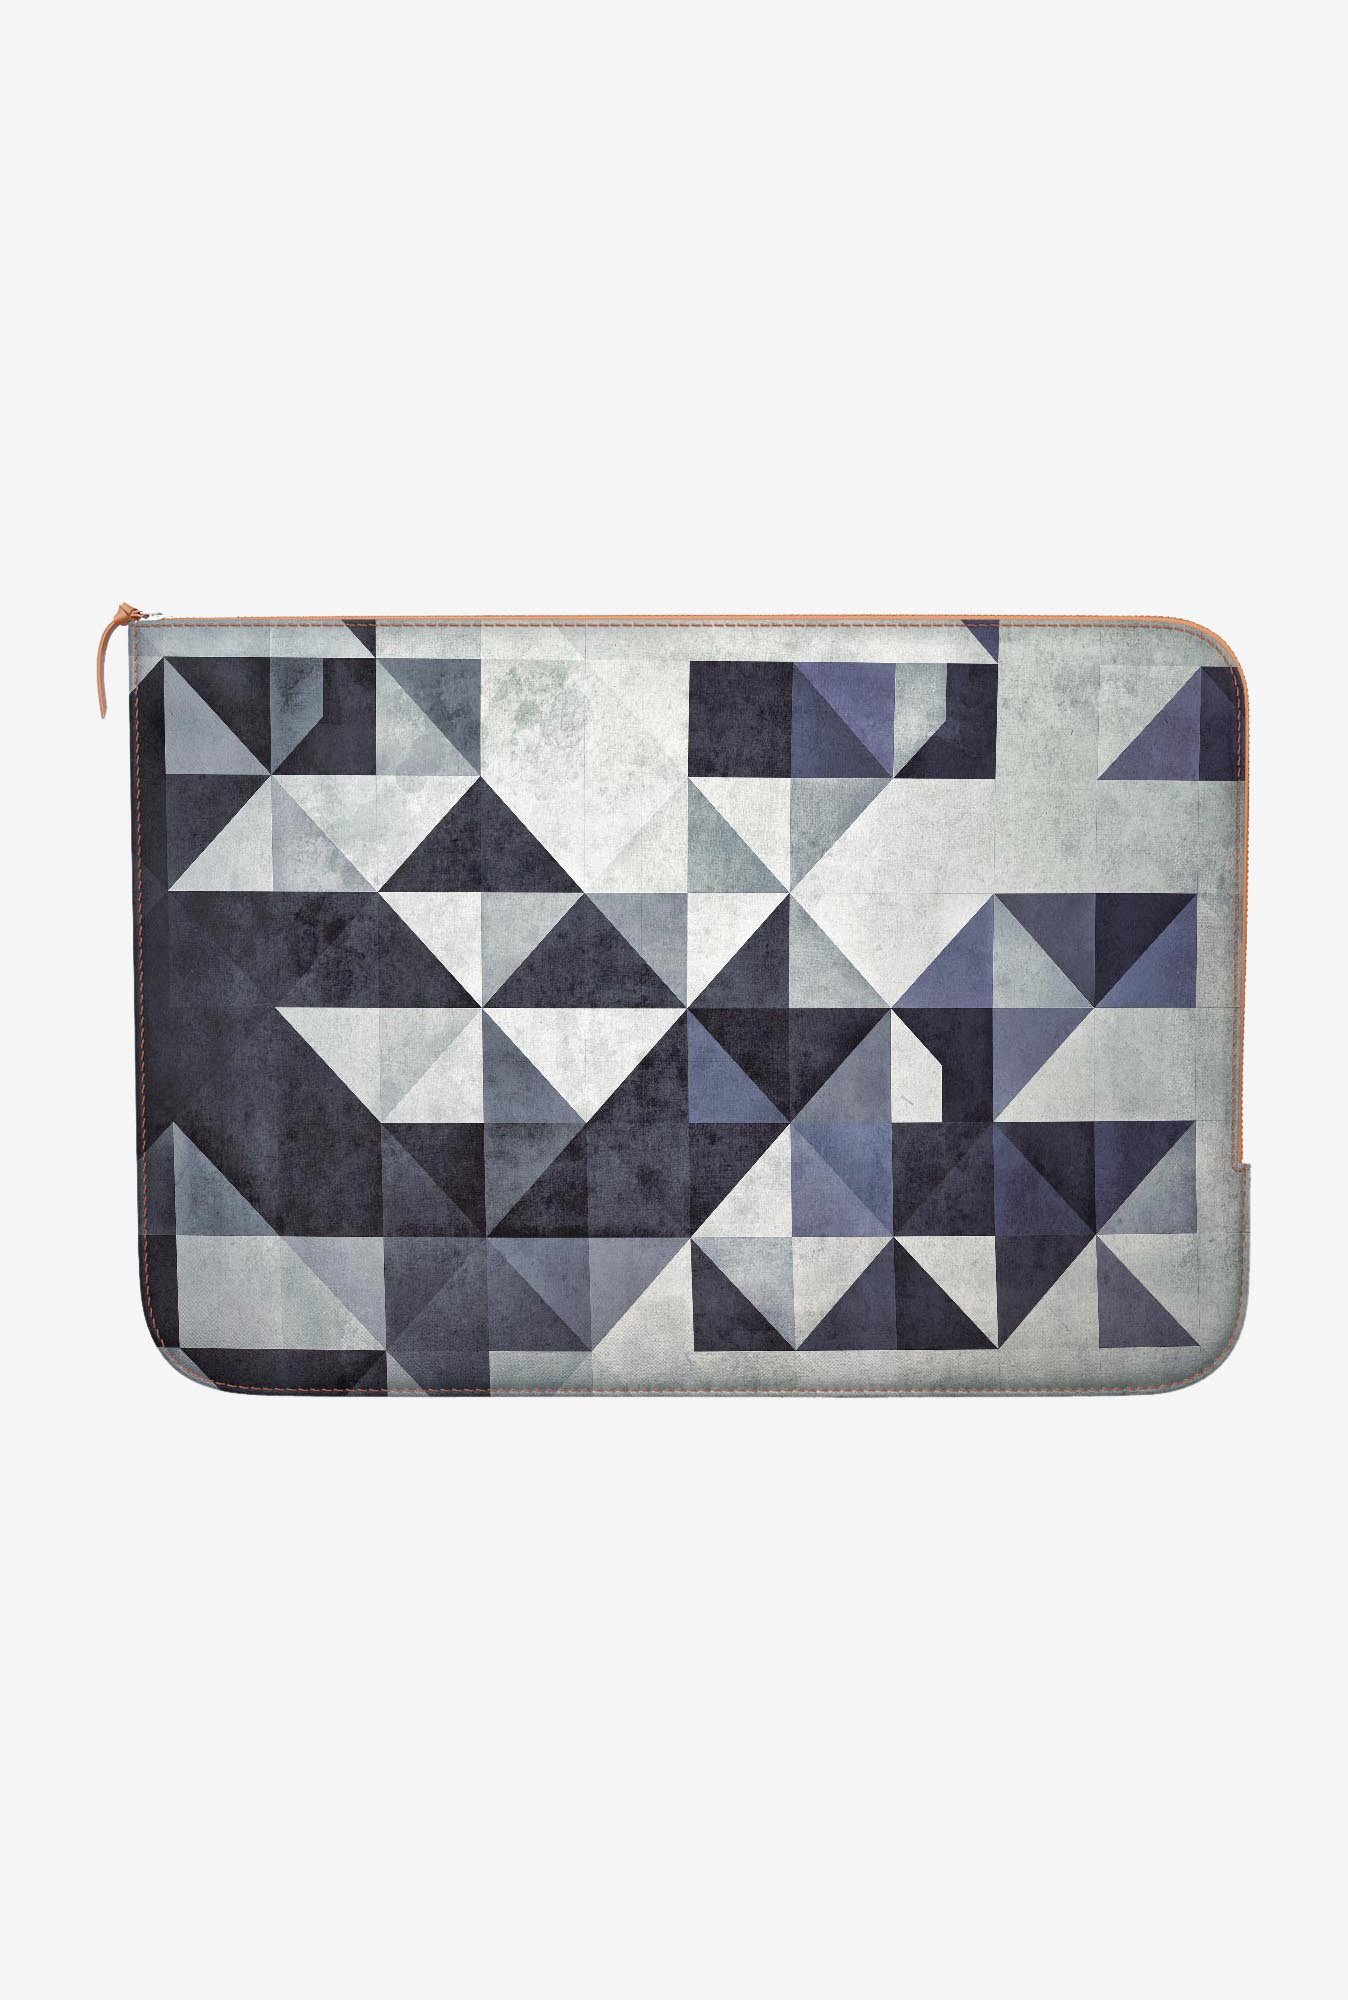 DailyObjects xkyyrr hyldyrz MacBook Air 13 Zippered Sleeve